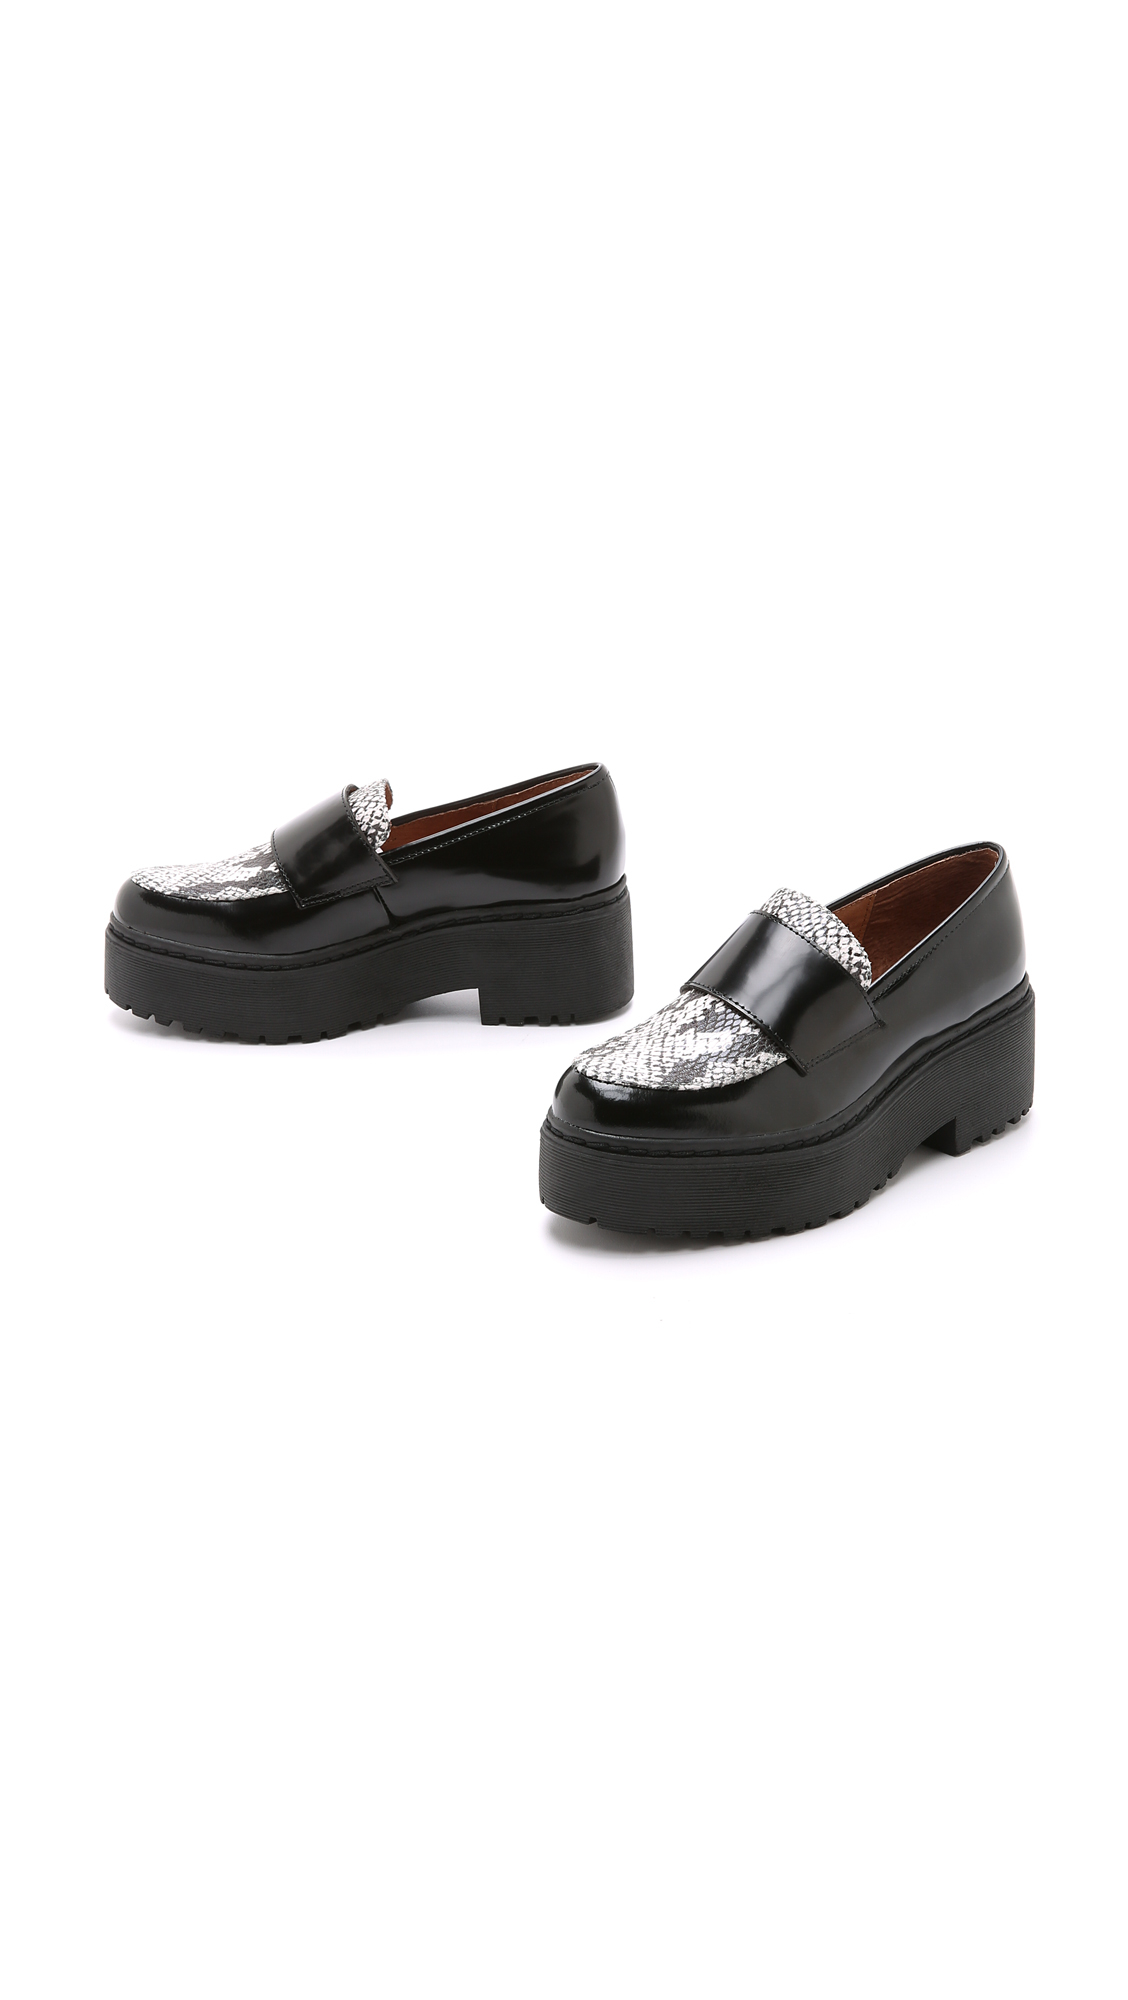 Jeffrey Campbell Wally Platform Loafers Black Grey In